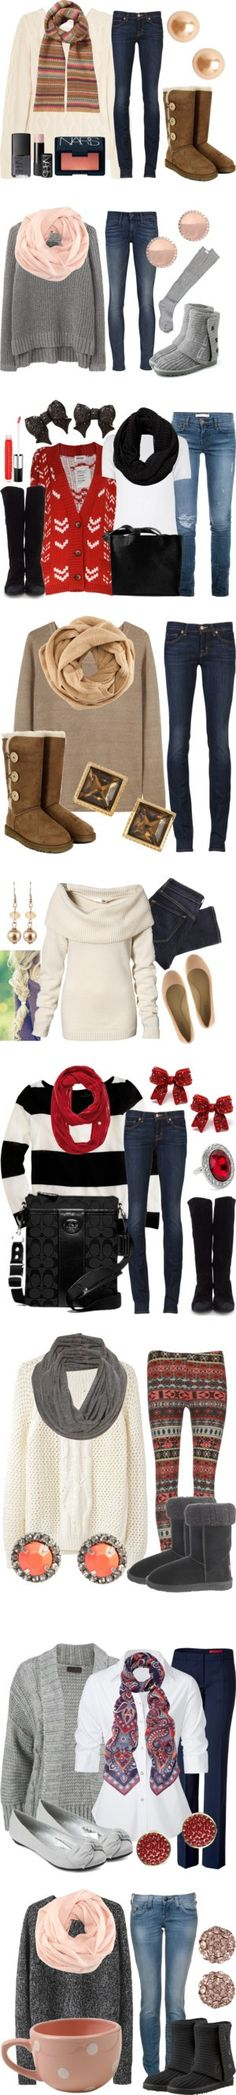 fall outfits I love these and would wear any of them!!